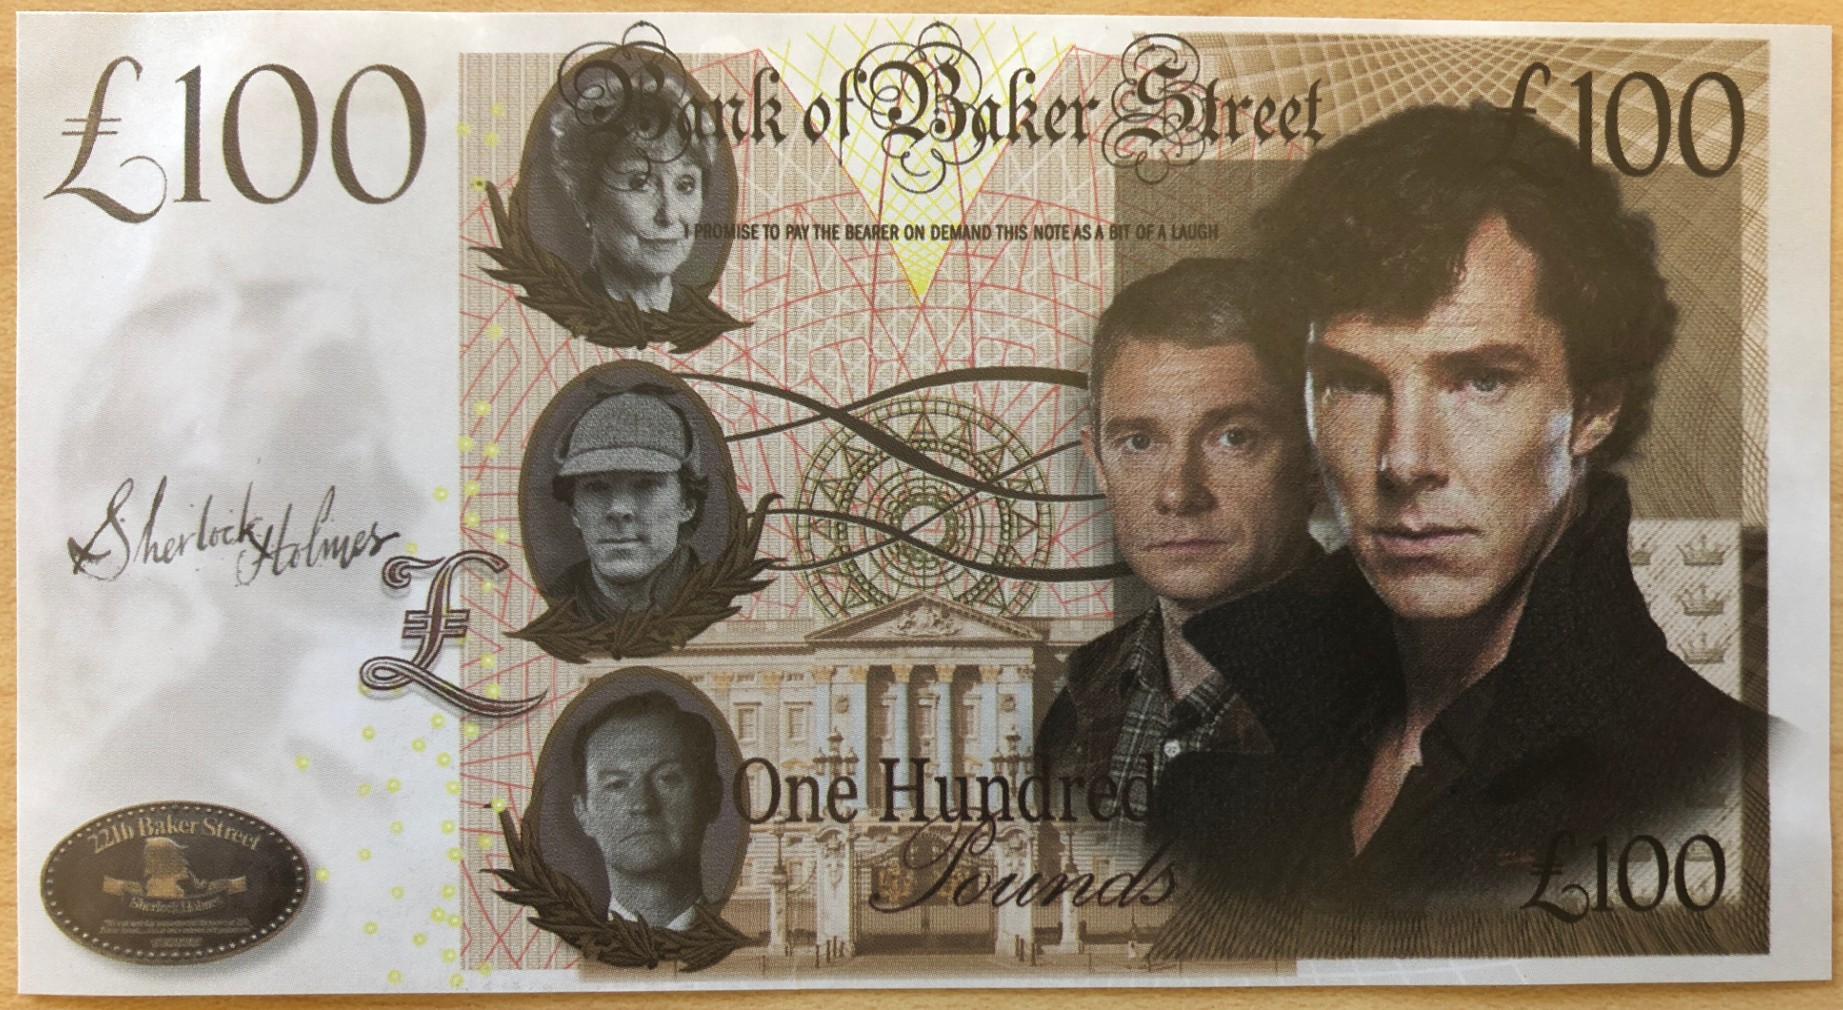 Fantasy £100 Bank of Baker Street Notes Feature BBC Sherlock Cast